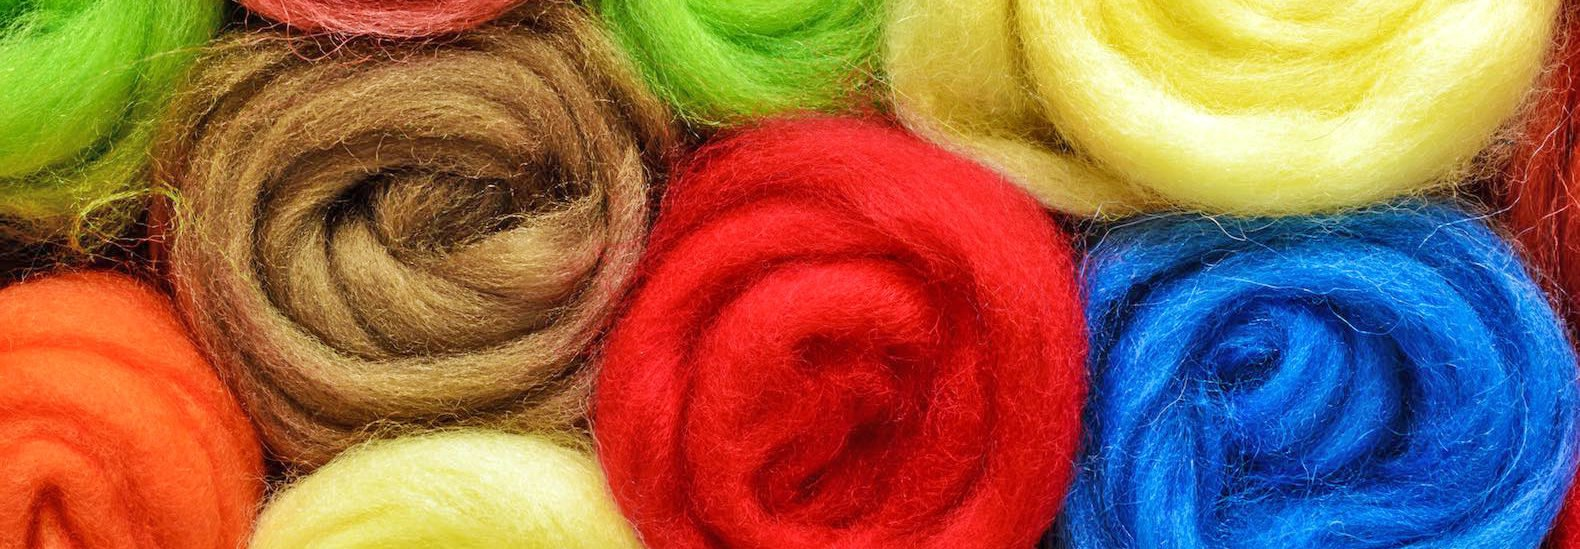 A Color Guide To The Best Plants For Dyeing Fabric And Fibers